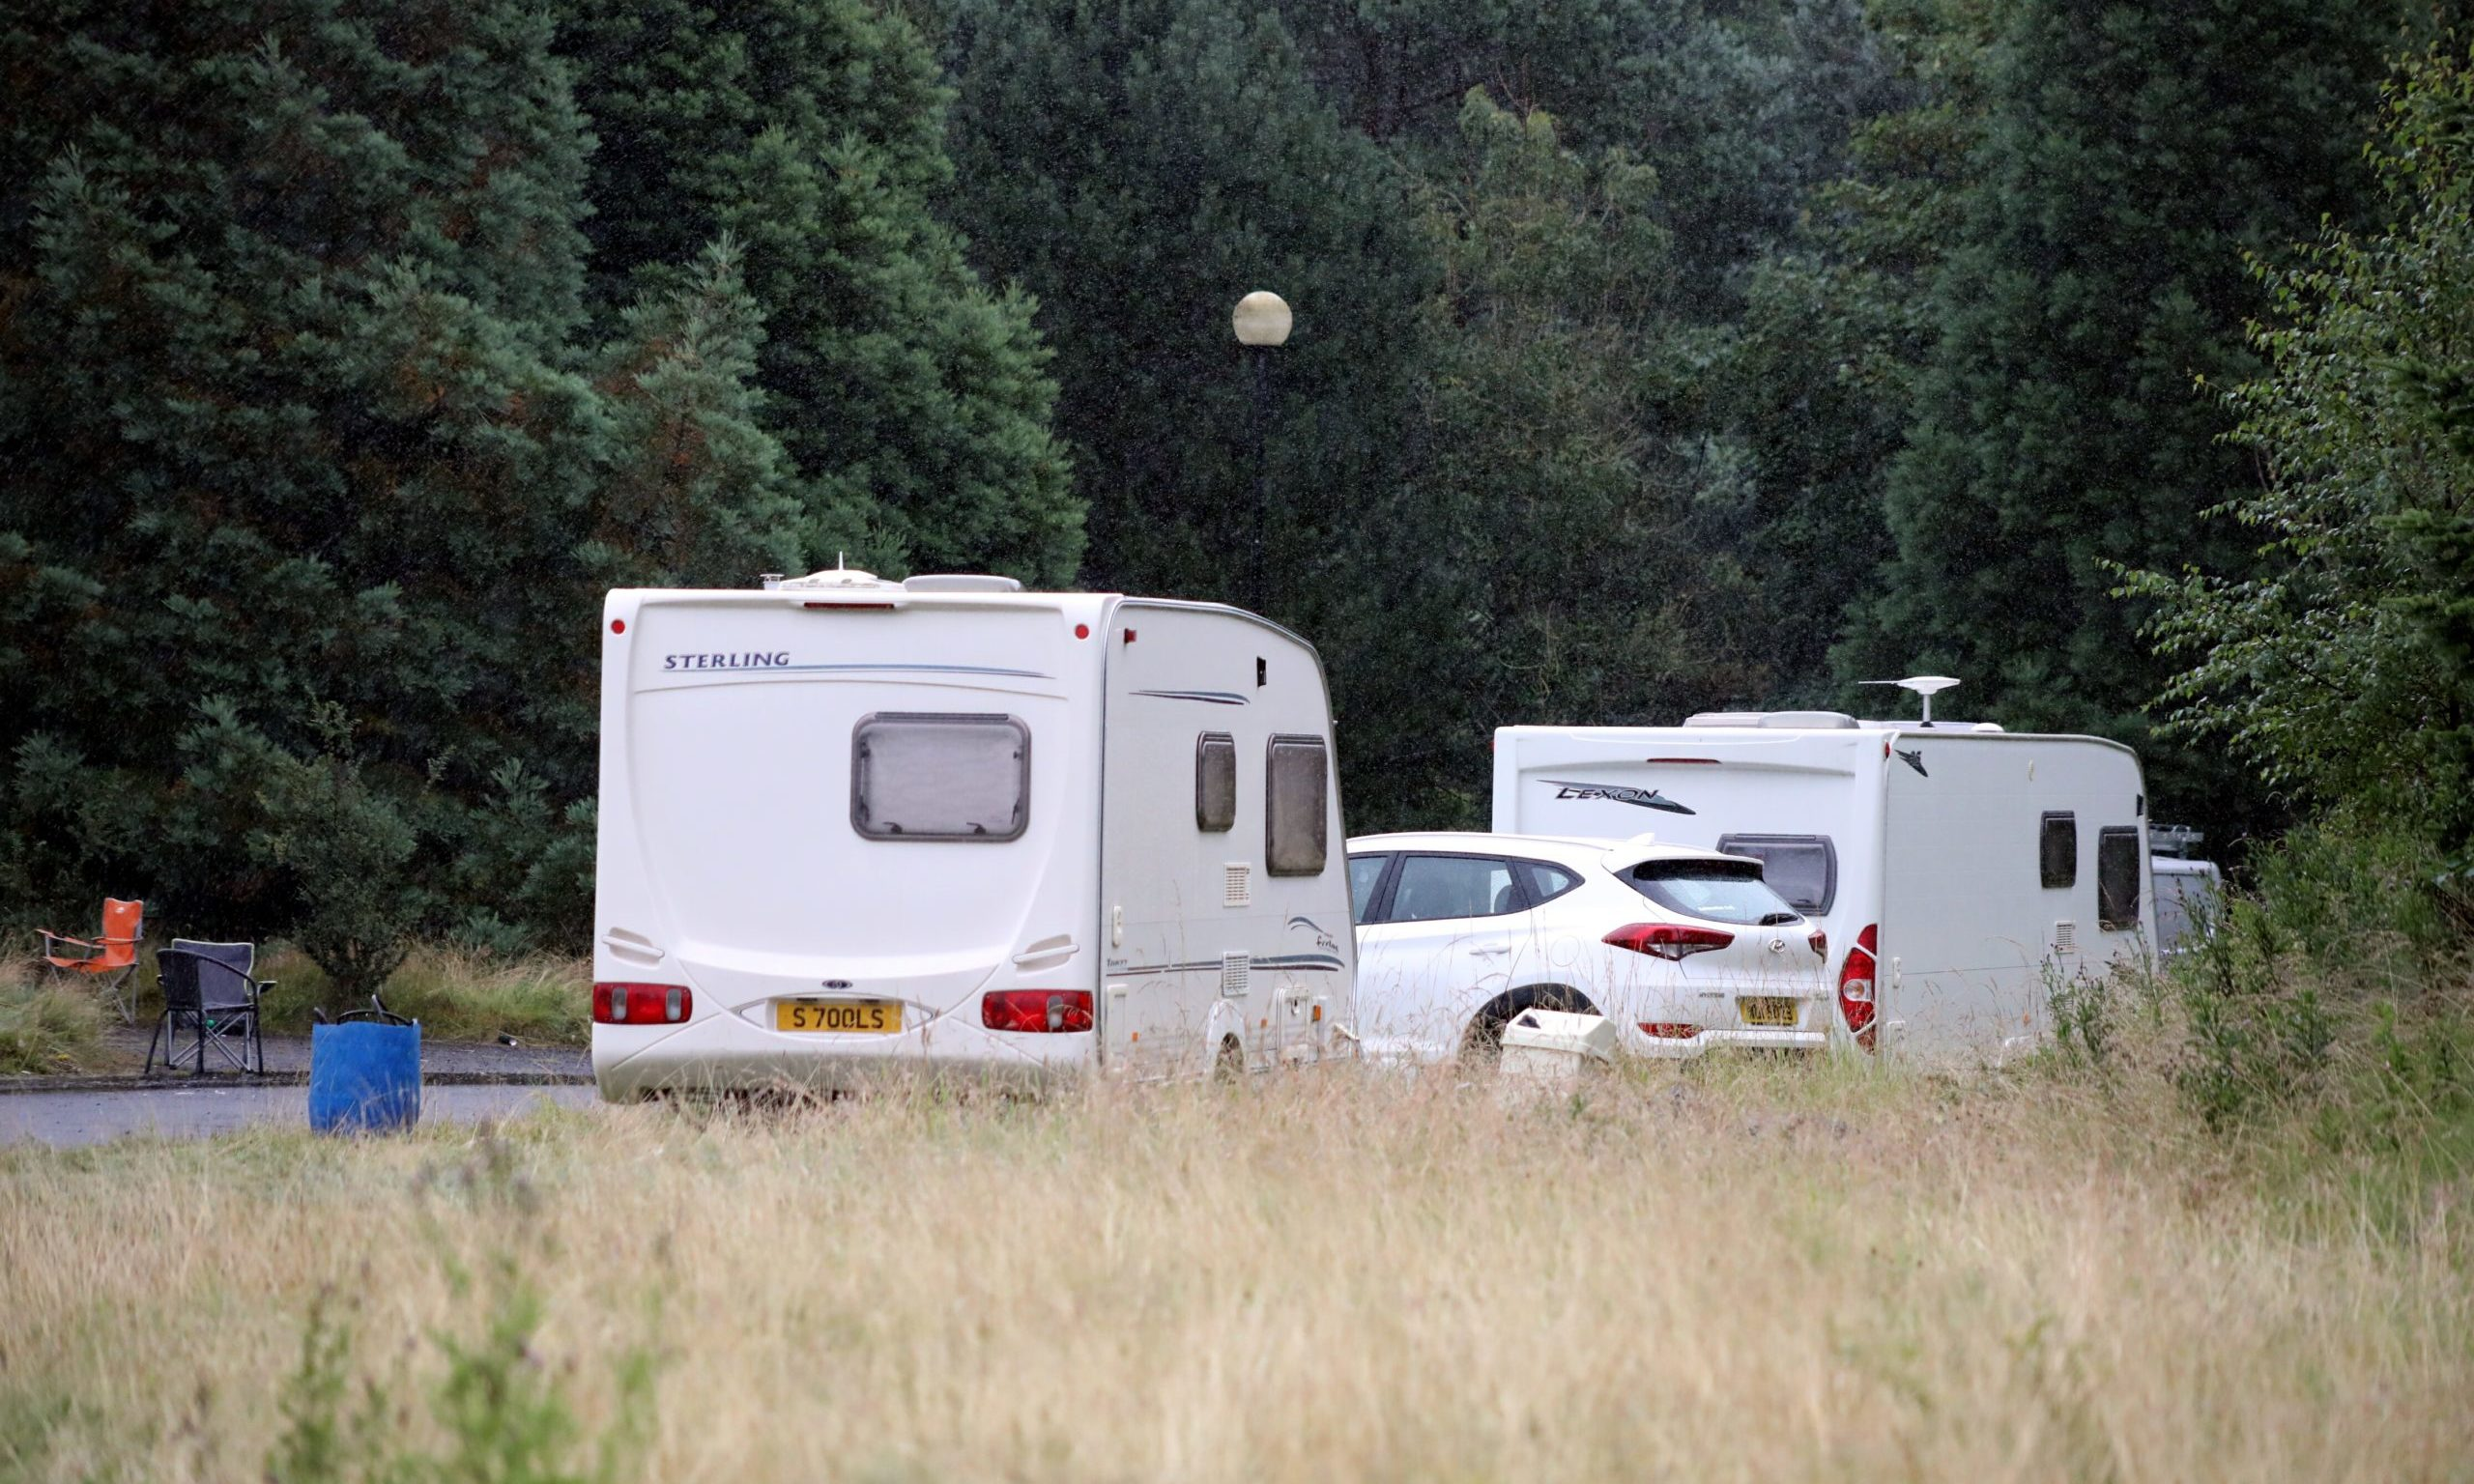 Traveller camp at the Aviva car park in Perth